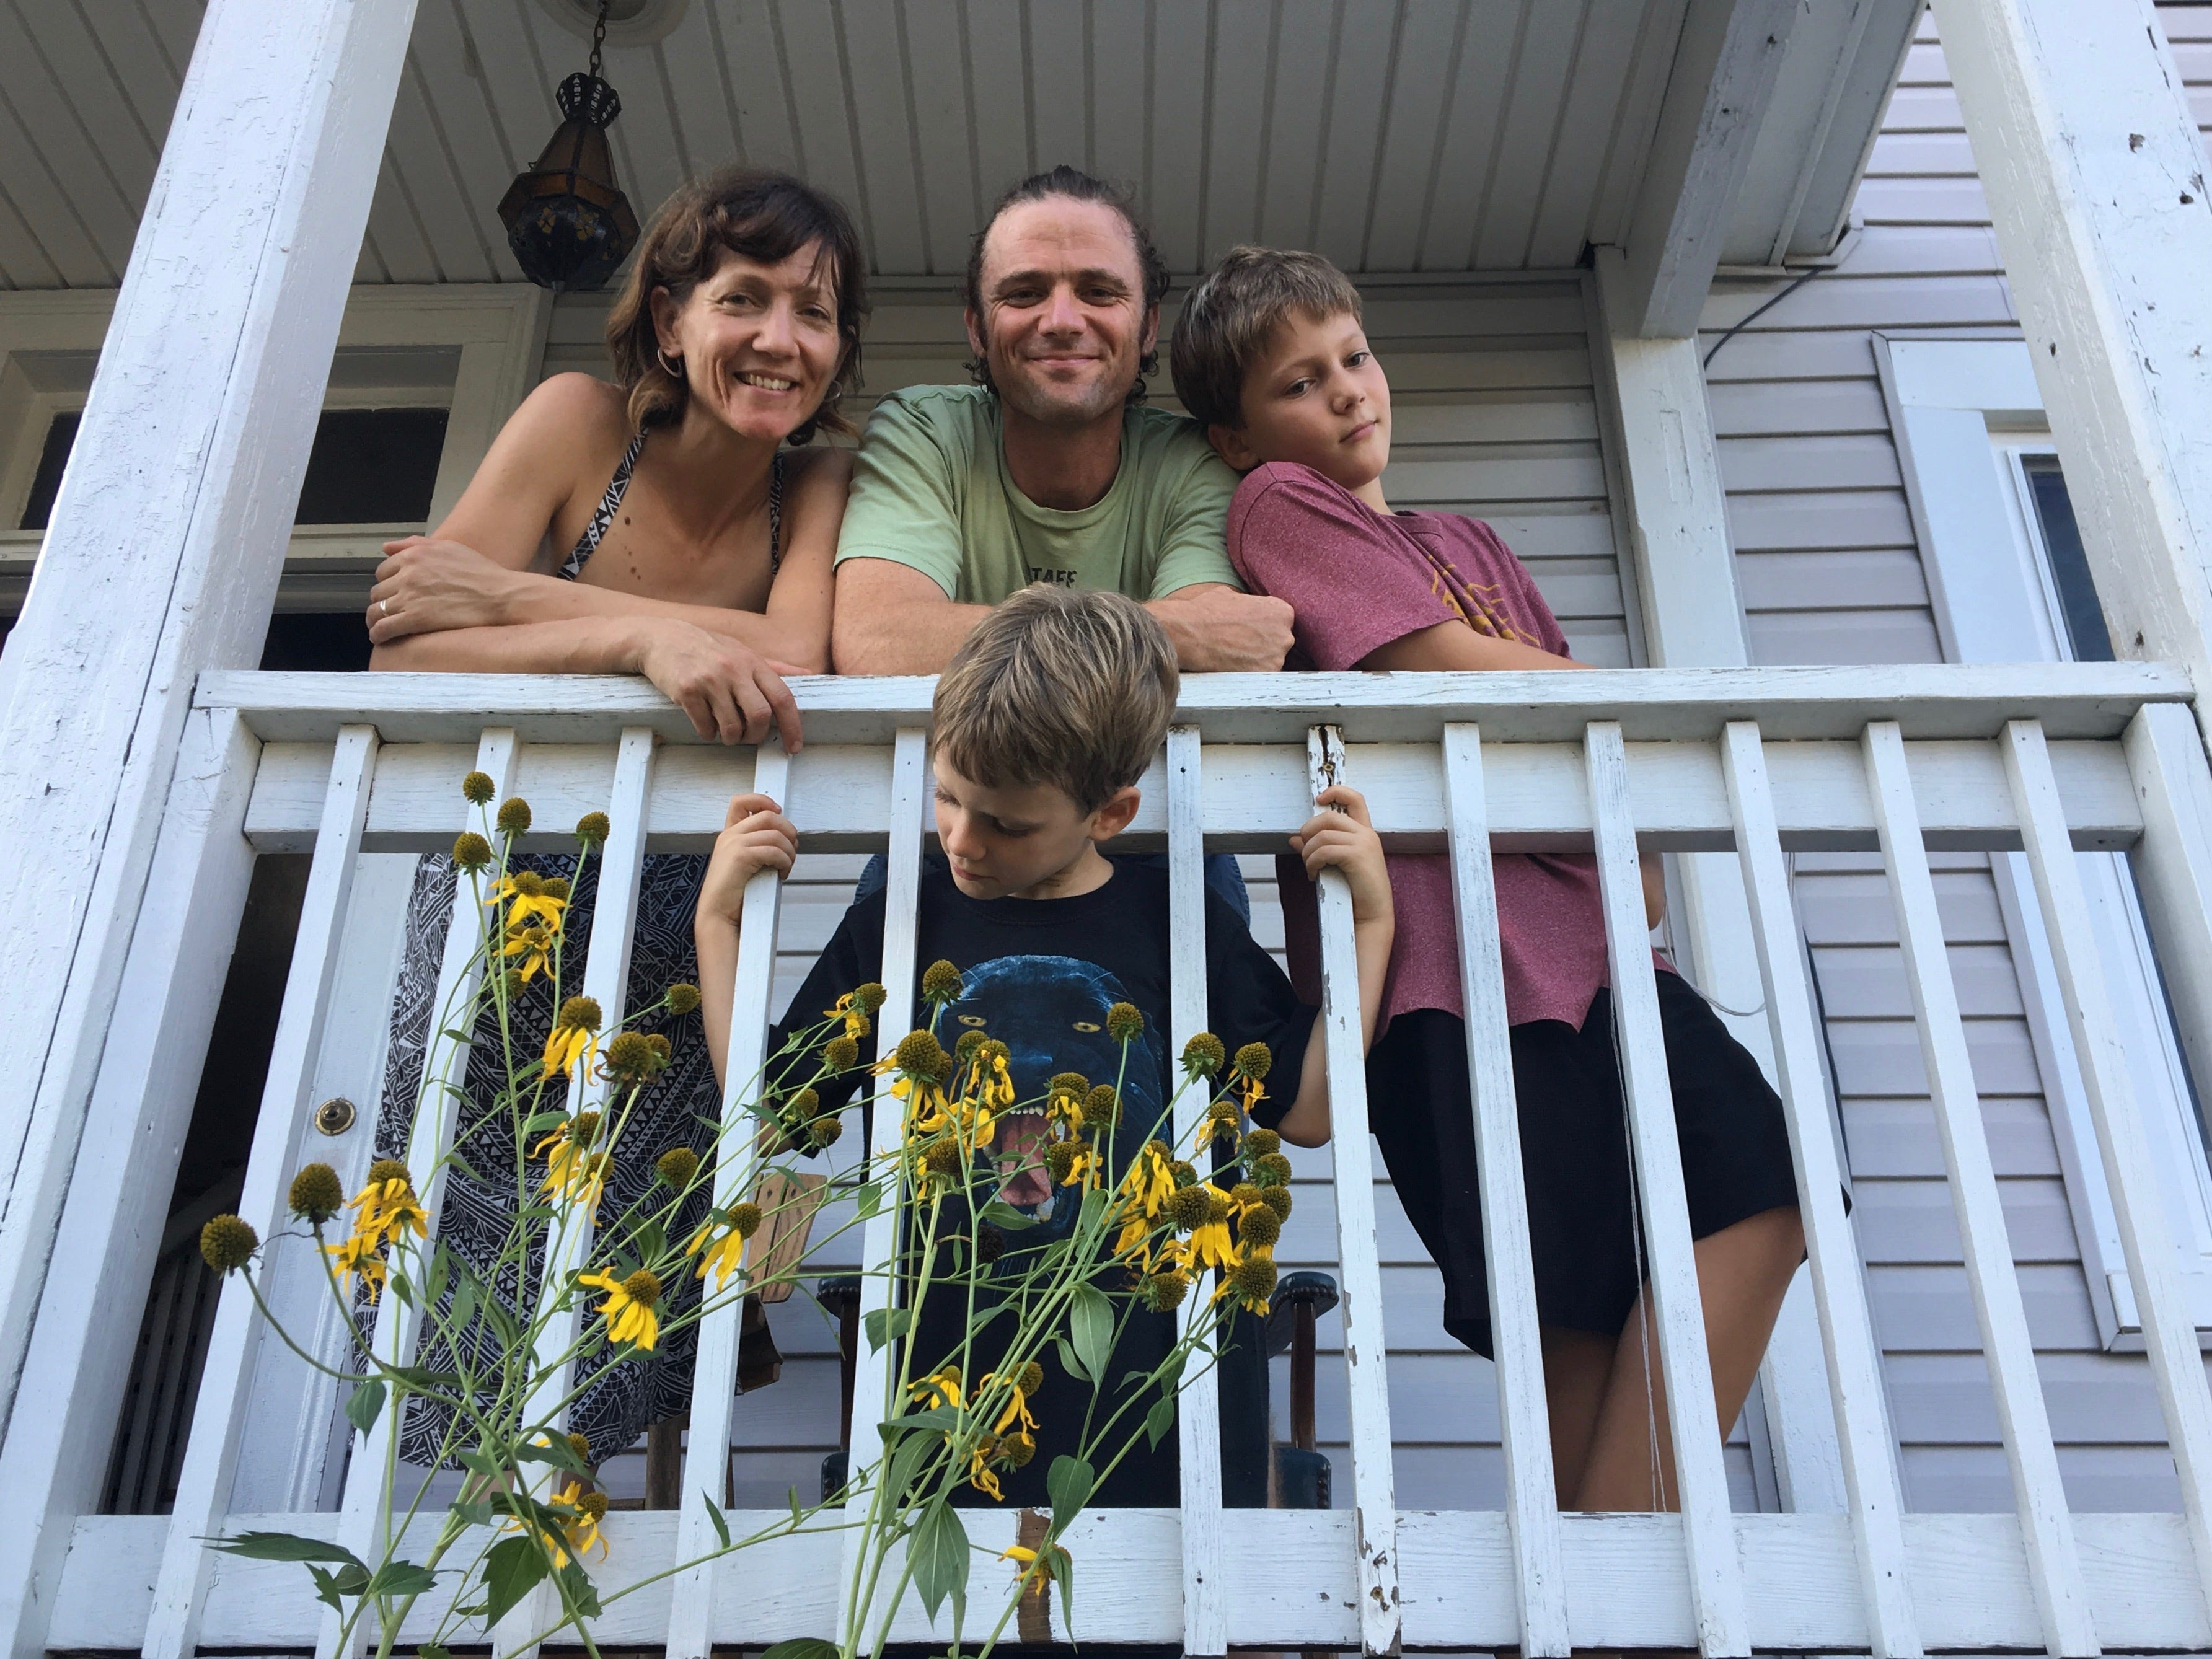 The Bergland family pose for a photograph on their front porch outside their Staunton home on Wednesday, Aug. 29, 2018. Standing is Louella, Alan and Langston. Kneeling down in front is Abel. Their home is filled with monarch butterflies, caterpillars and dozens of chrysalises thanks to planting milkweed in their yard. They also have sunflowers everywhere.